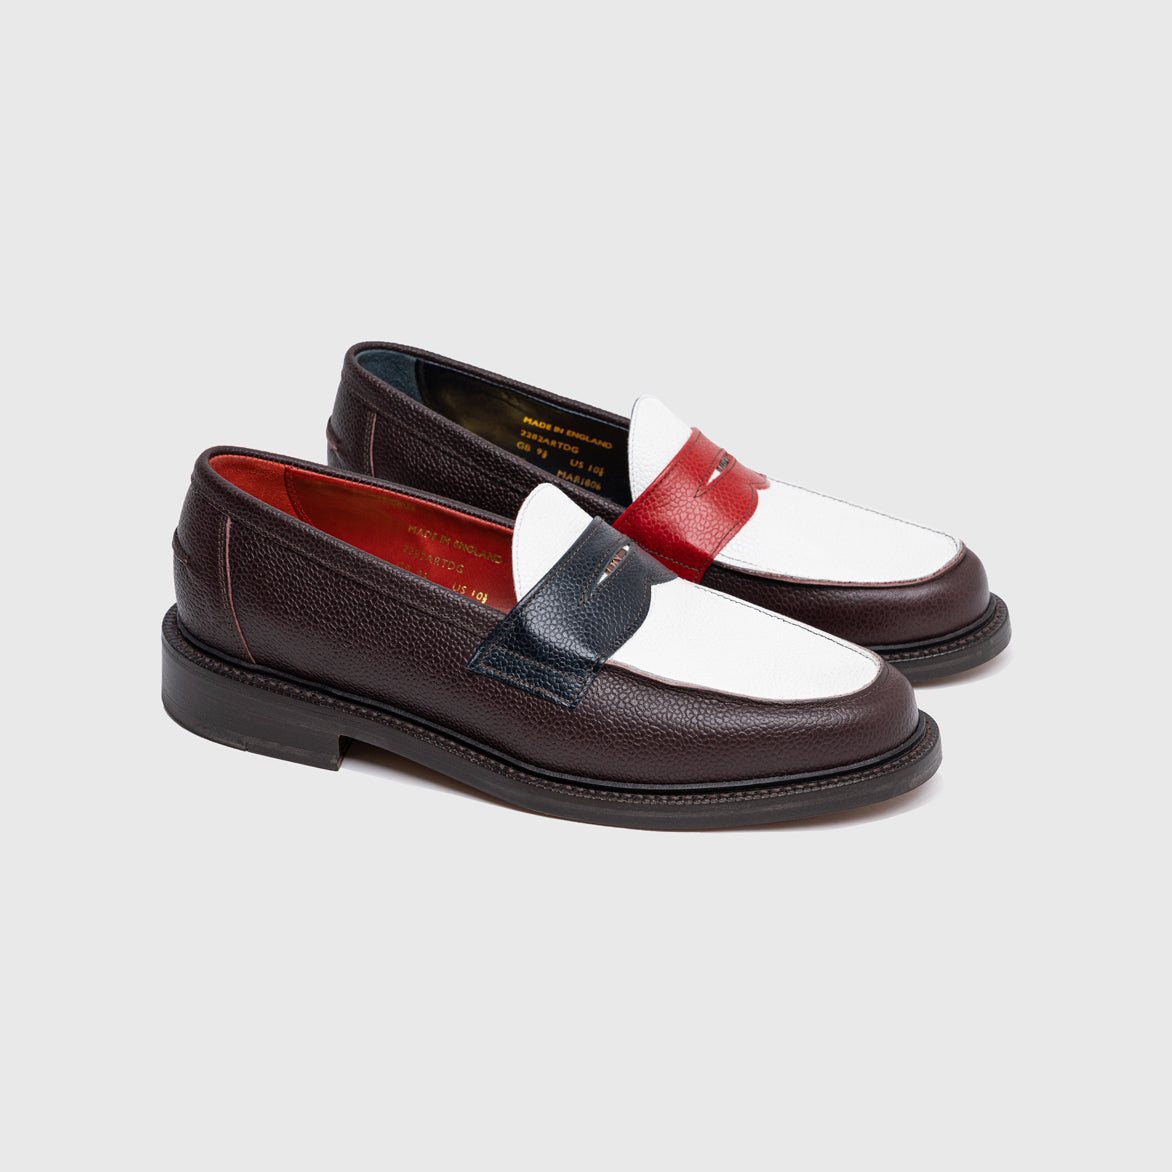 BLACKSTOCK & WEBER X 76ERS COURTSIDE LOAFER - MULTI